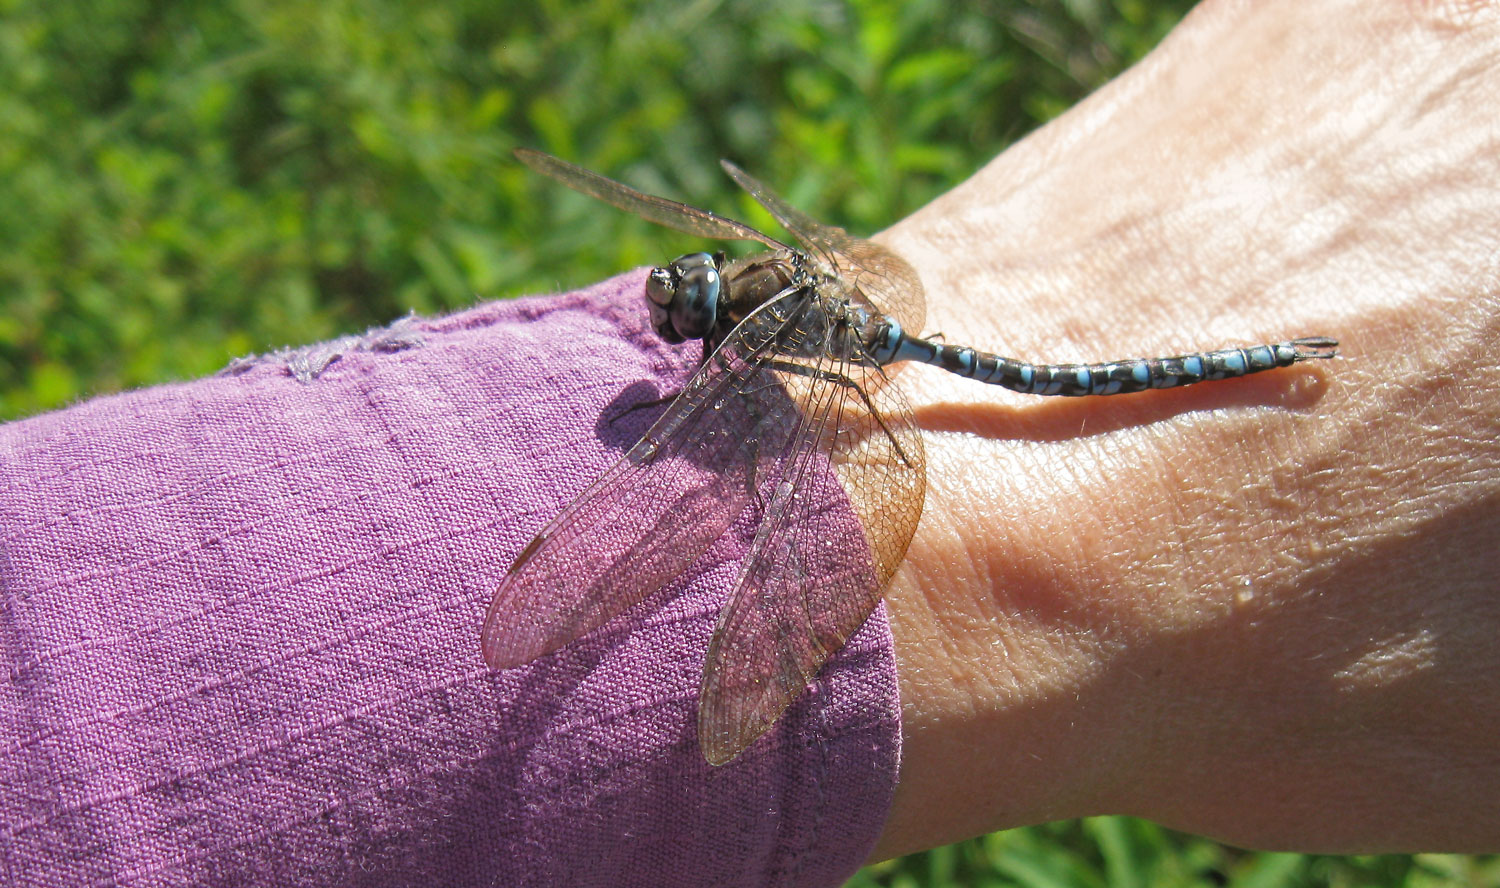 Darner dragonfly stopping by for a visit.